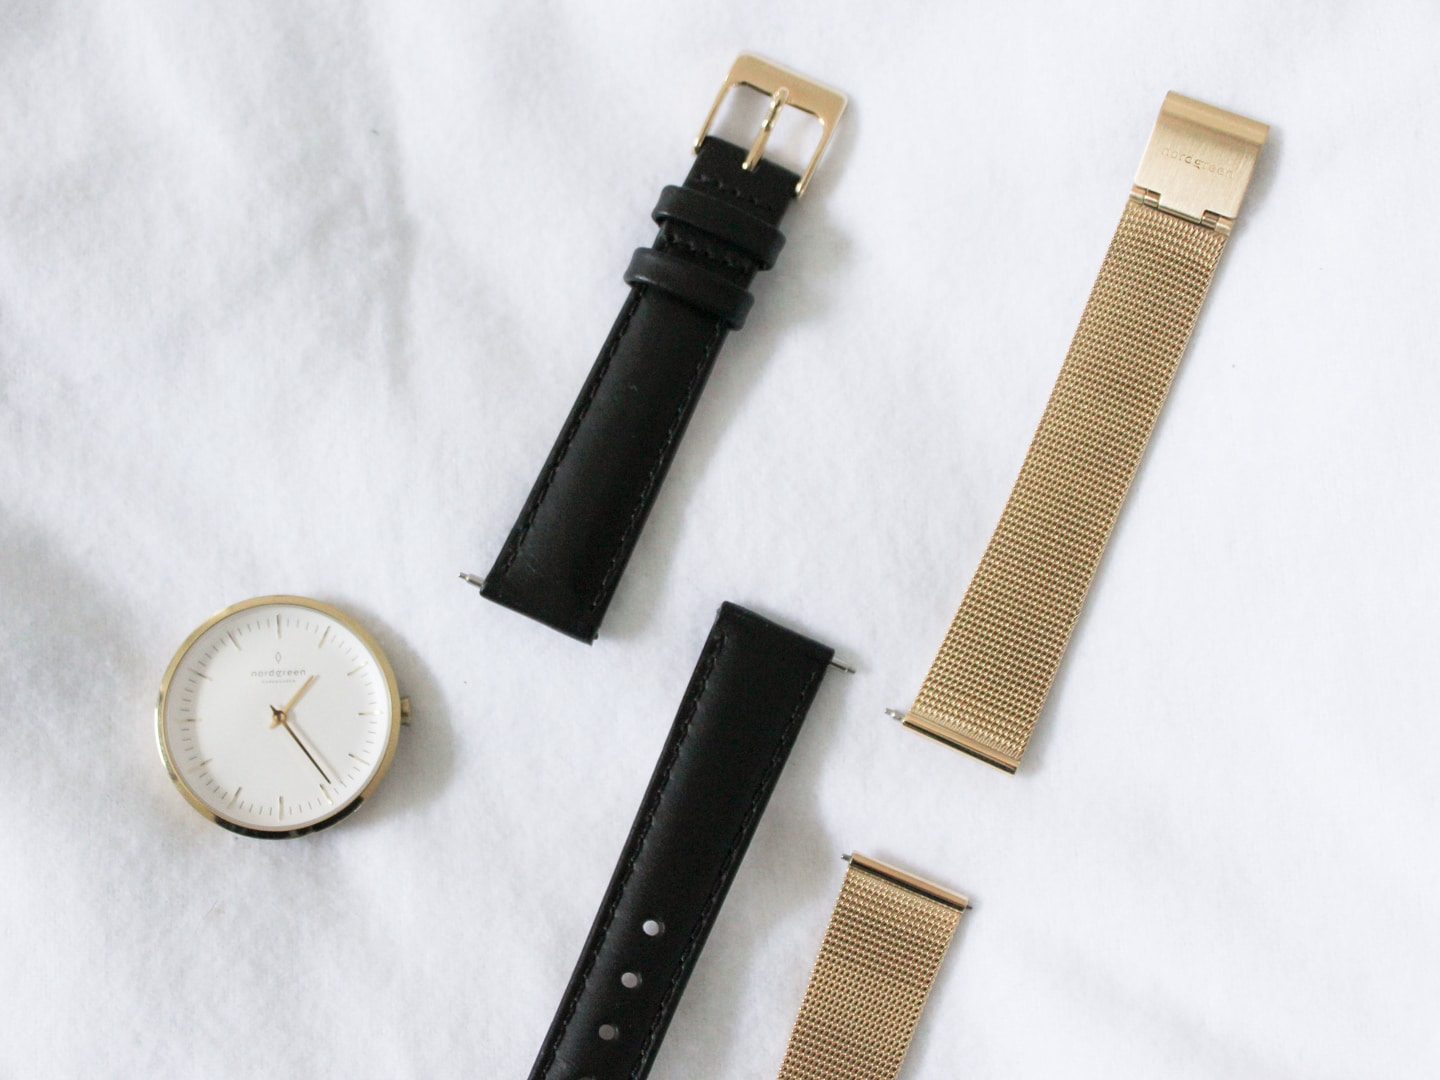 Nordgreen watch with interchangeable straps